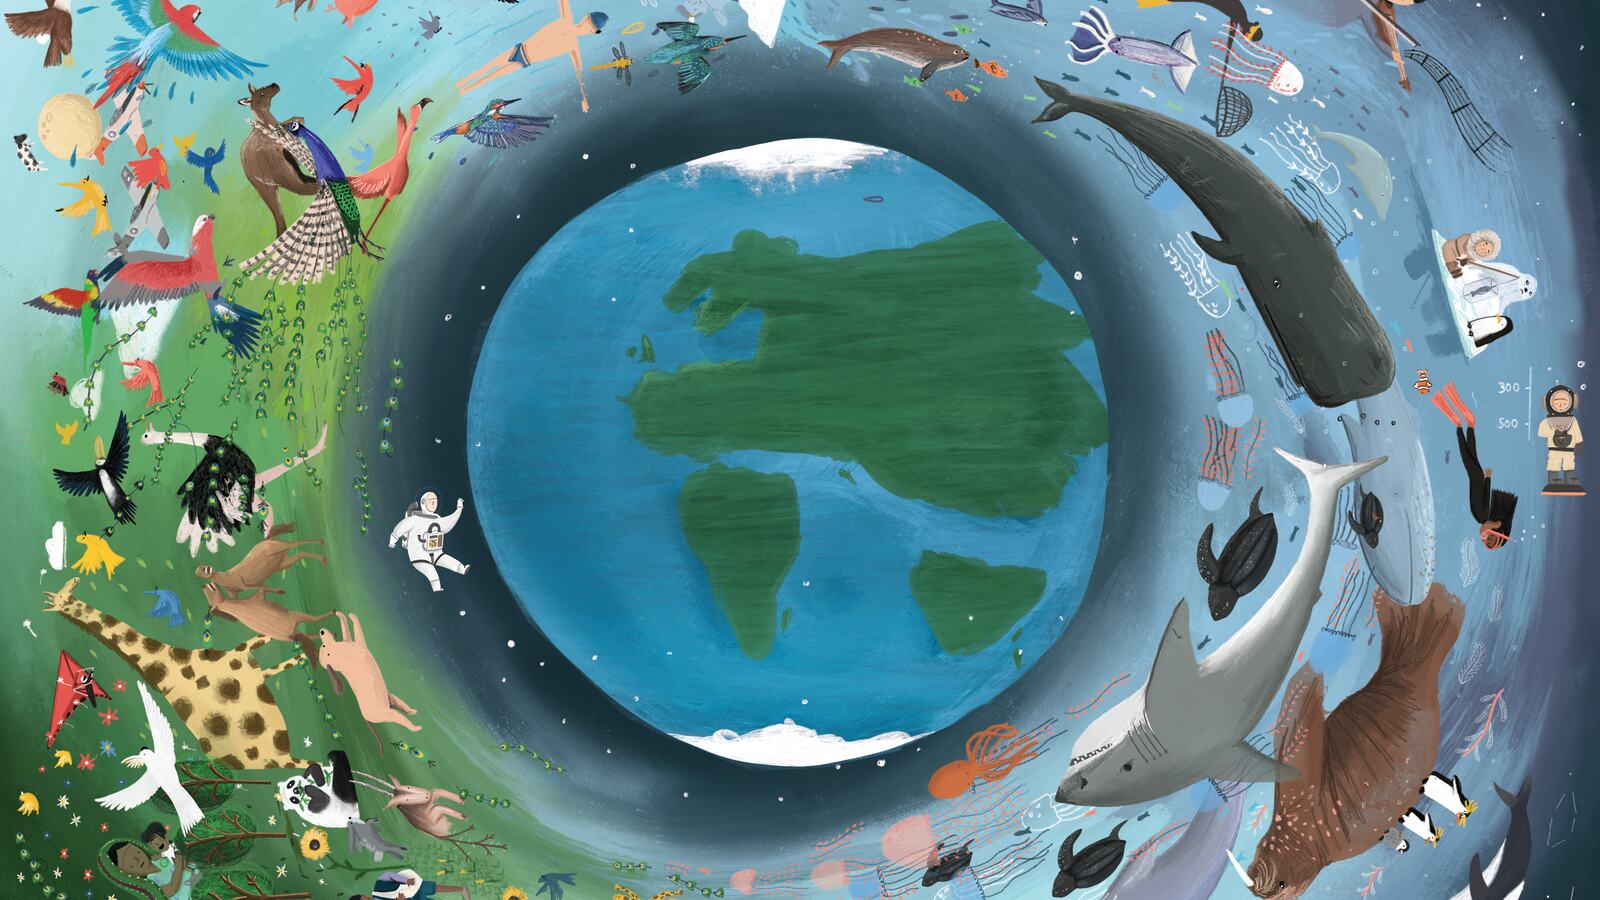 An illustration of earth surrounded by nature and animals